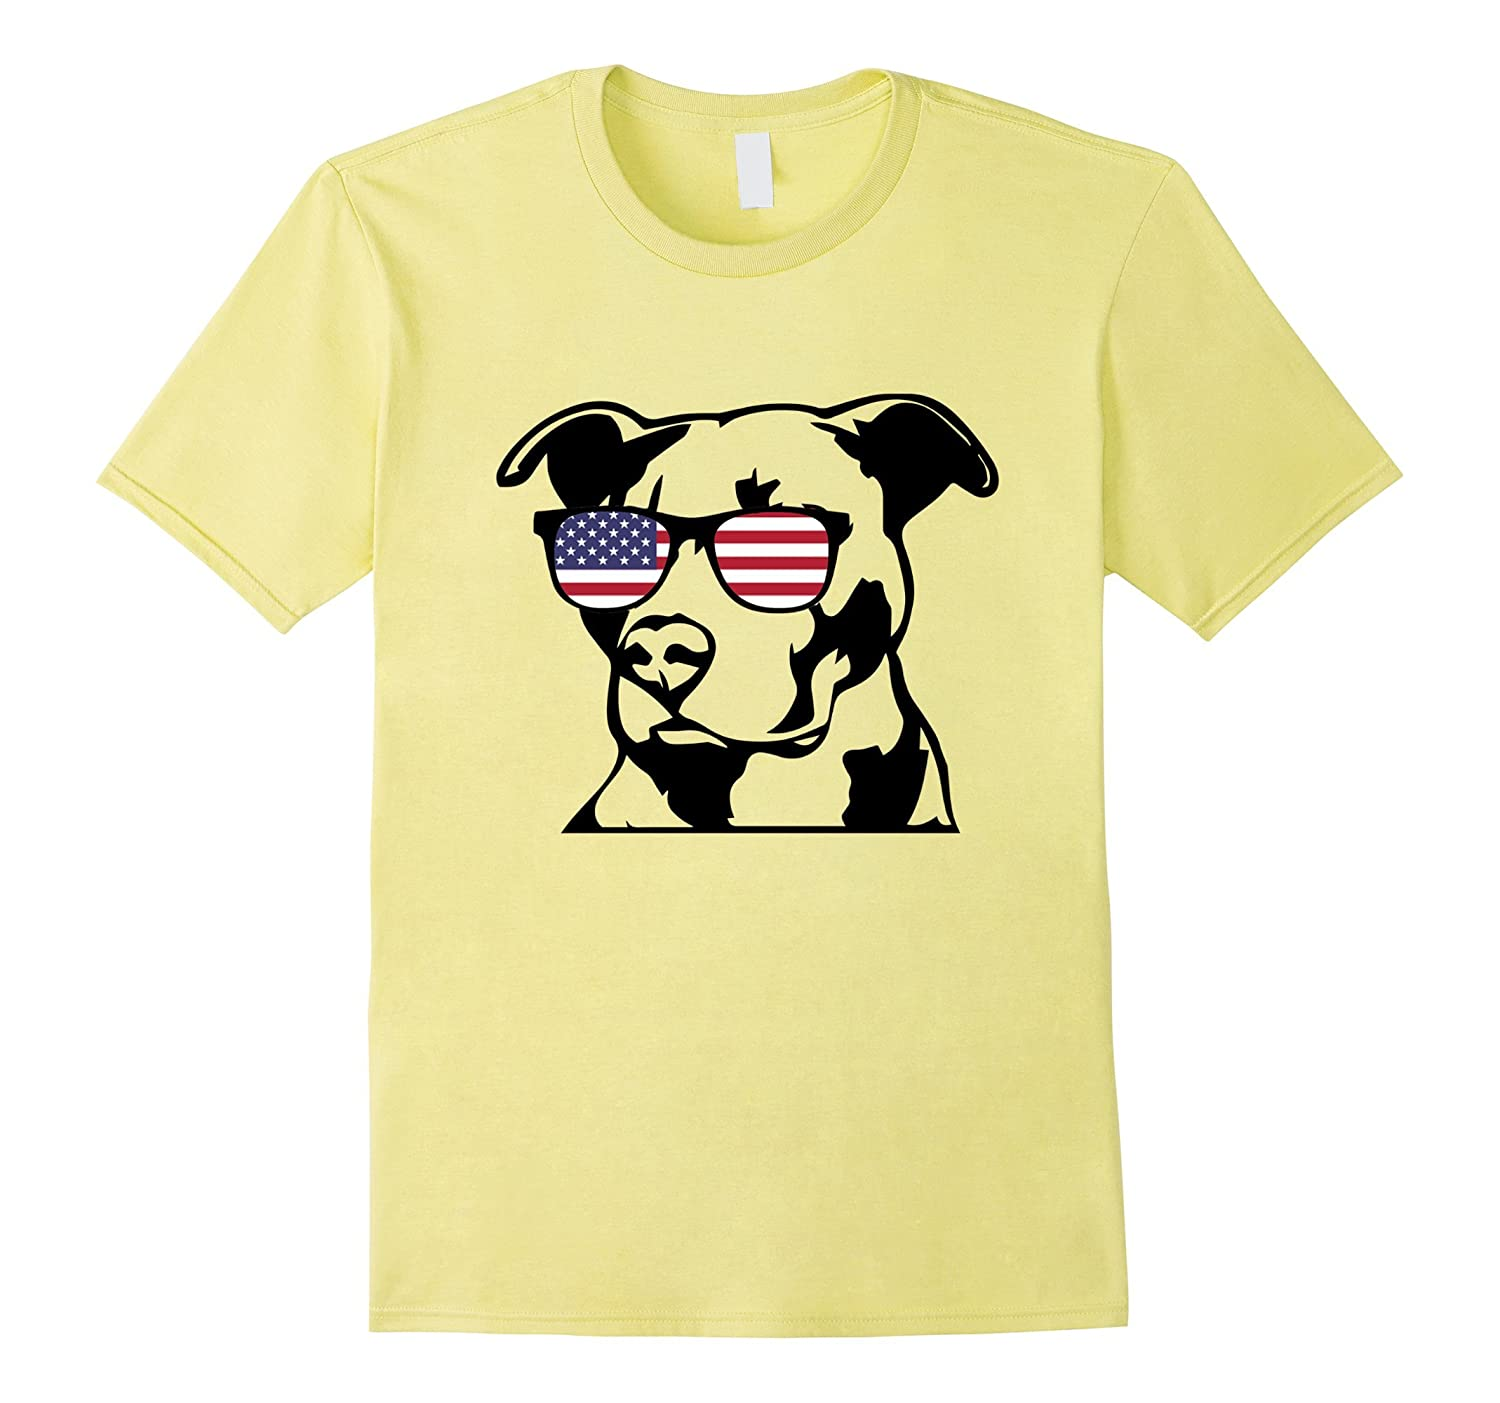 18b71be9950dd Funny Pitbull With American Flag Glasses 4th of July T-Shirt –  Febaaccessories.com